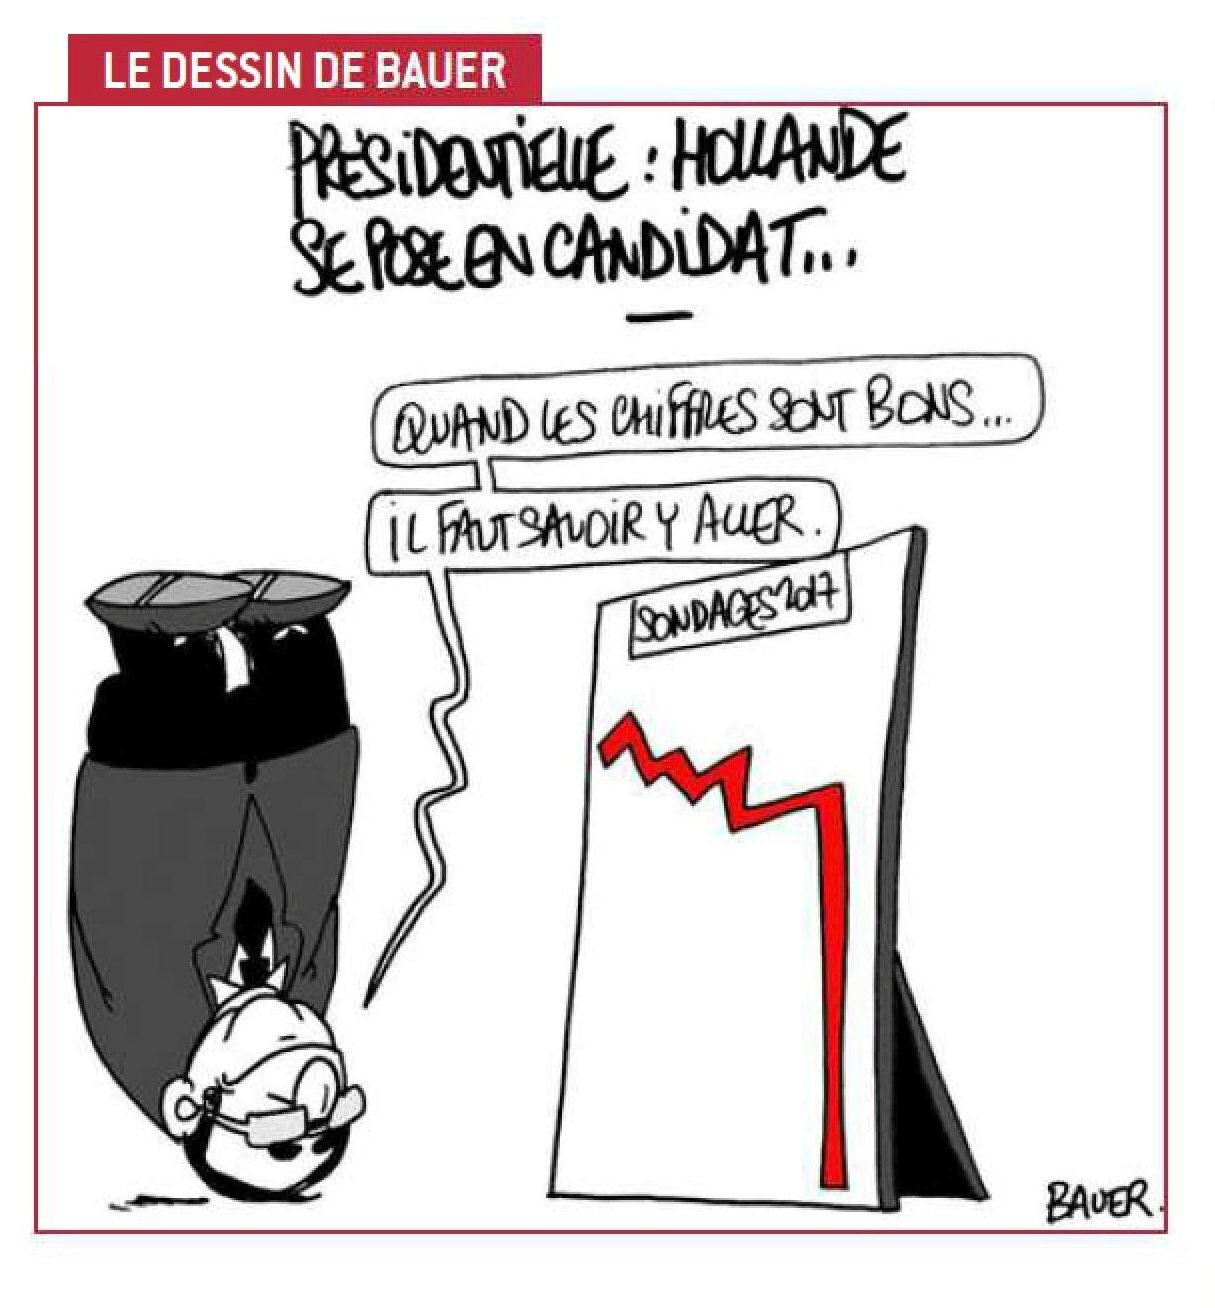 ps hollande election humour president sondage